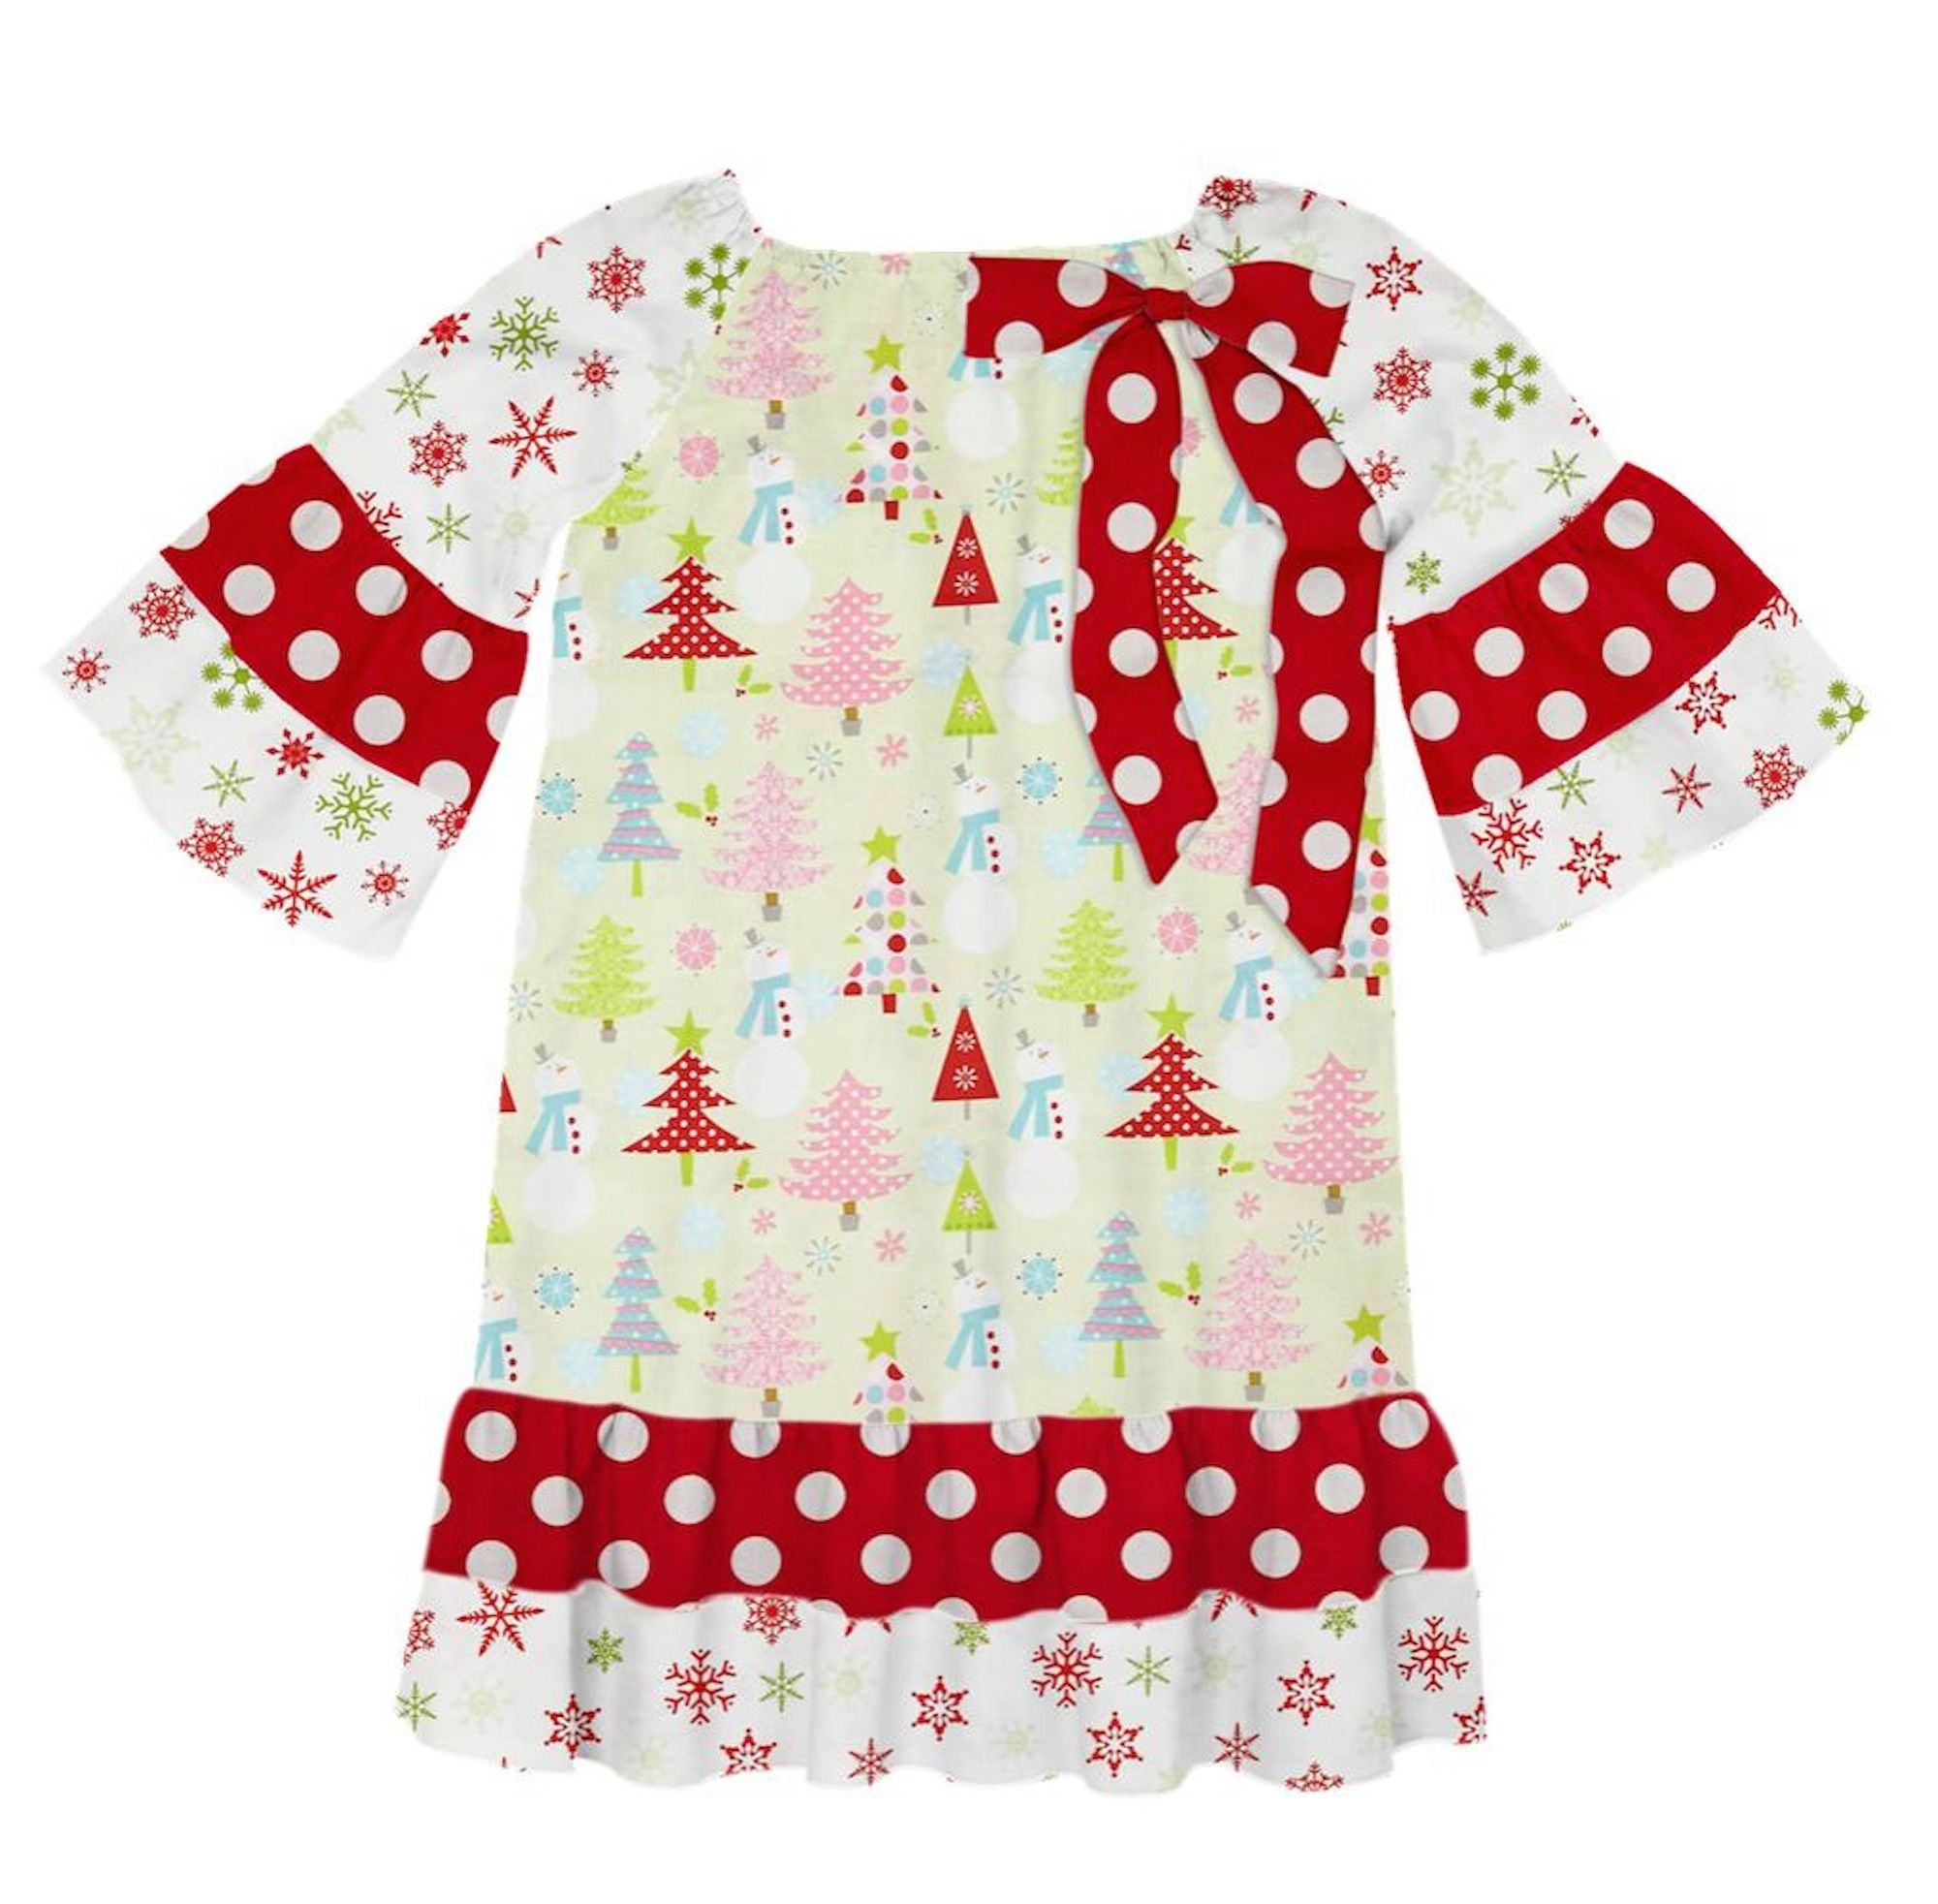 Check out this cute Christmas dress Heather Thompson created on Designed By Me from Lolly Wolly Doodle!